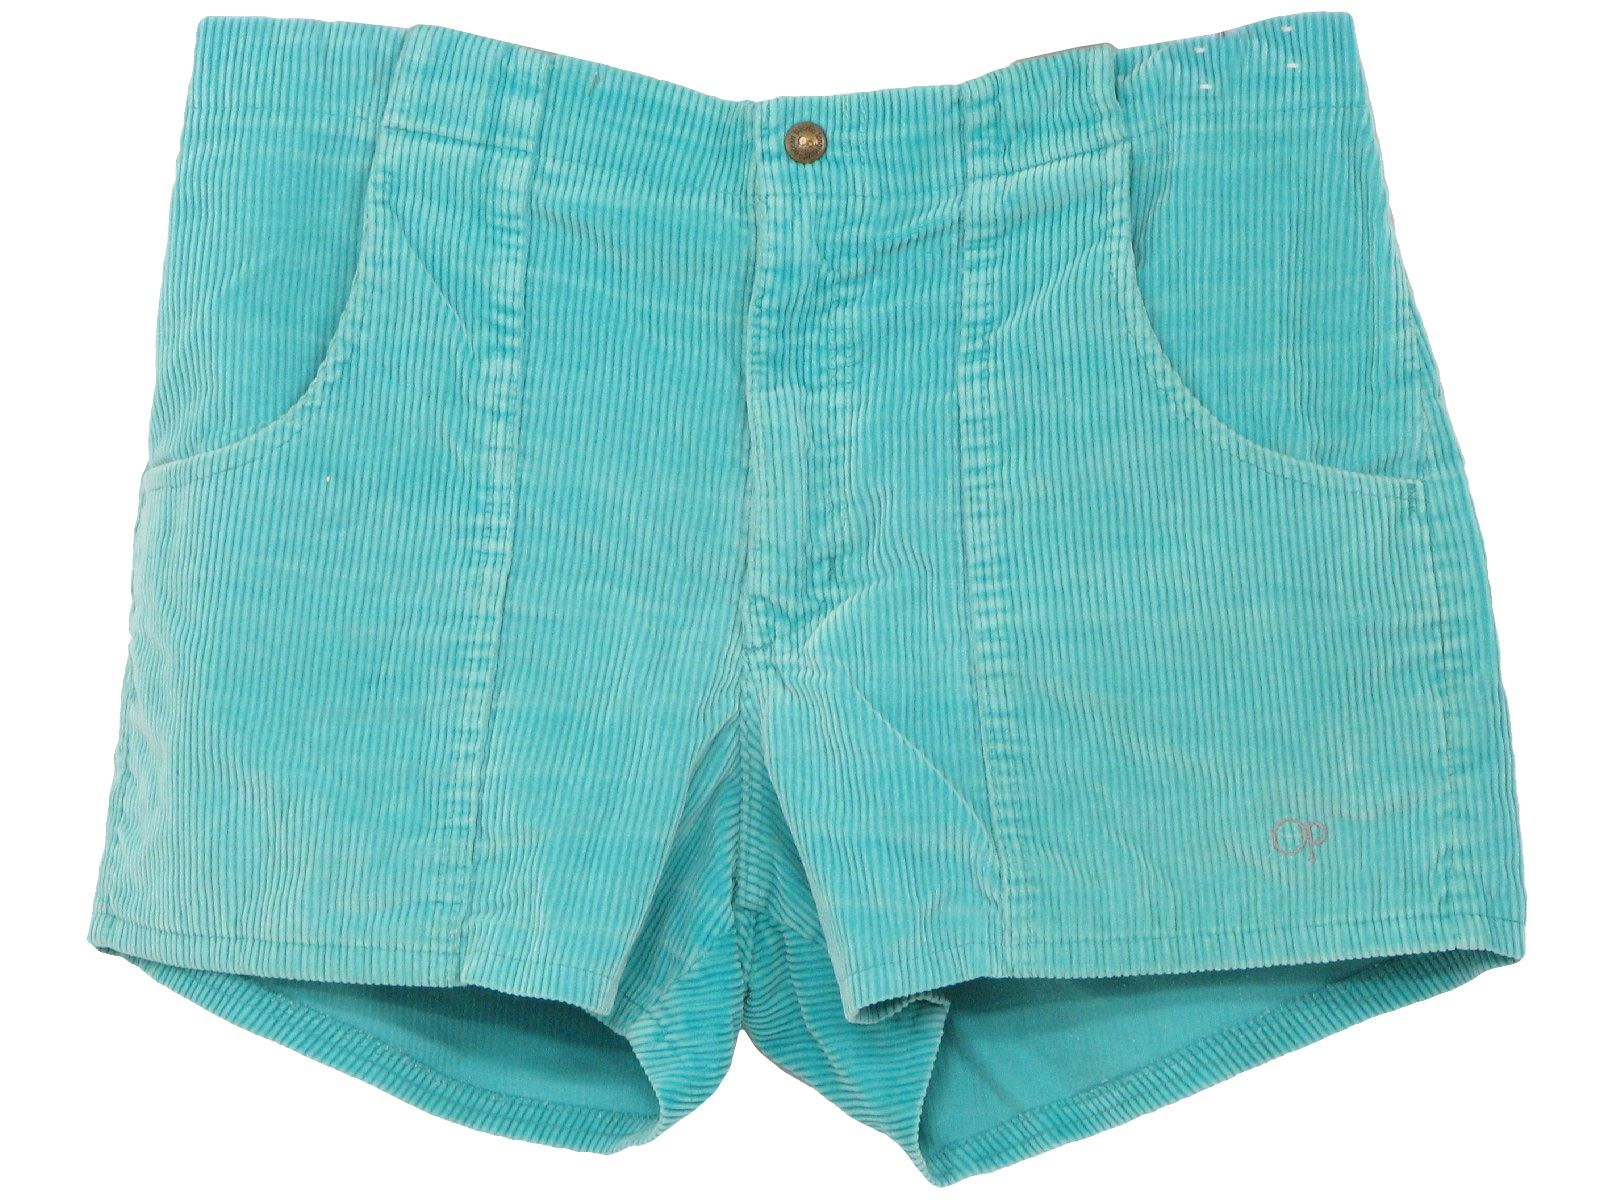 fe2eb3cb700ec6 80s -OP (Ocean Pacific) - Mens teal green faded cotton corduroy shorts with  snap/zip closure, three patch pockets and embroidered op emblem.